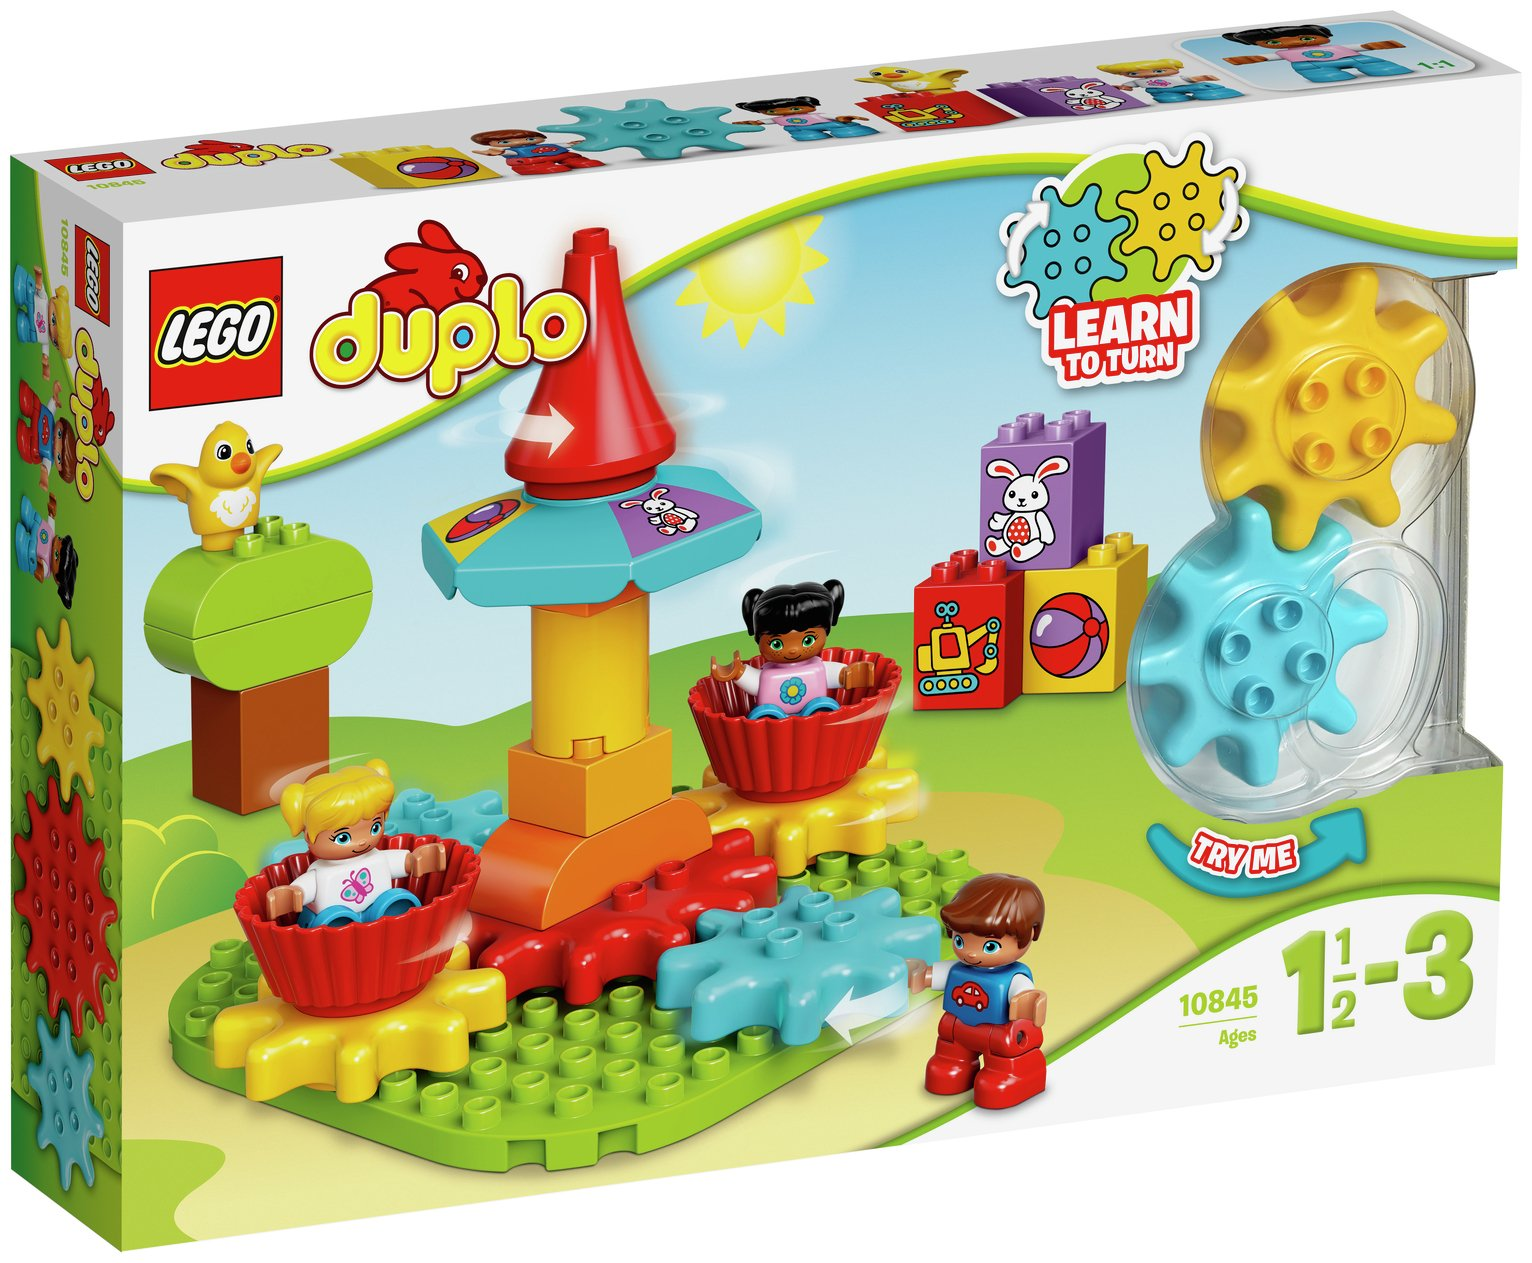 Lego Duplo Alternative